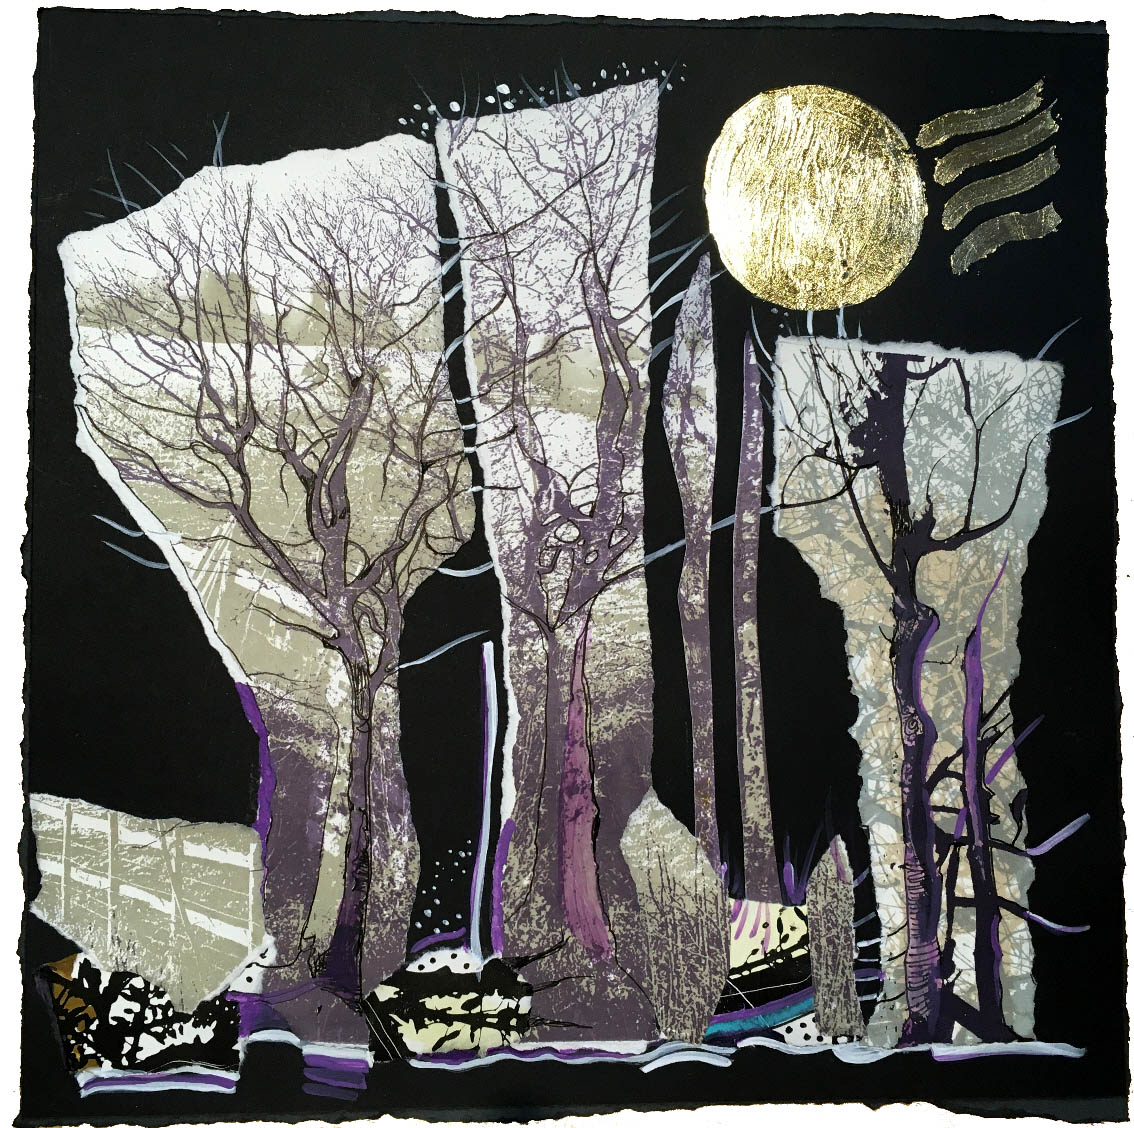 JUST FINISHED SNOW IN THE WOODS Had a great time making a new collage from old prints and added gold leaf yesterday on black paper #Trees #moonlight  #moon #snow #woodland #night #winter #winterwalks #mondaythoughts #stressrelief #ArtistOnTwitter #mystery